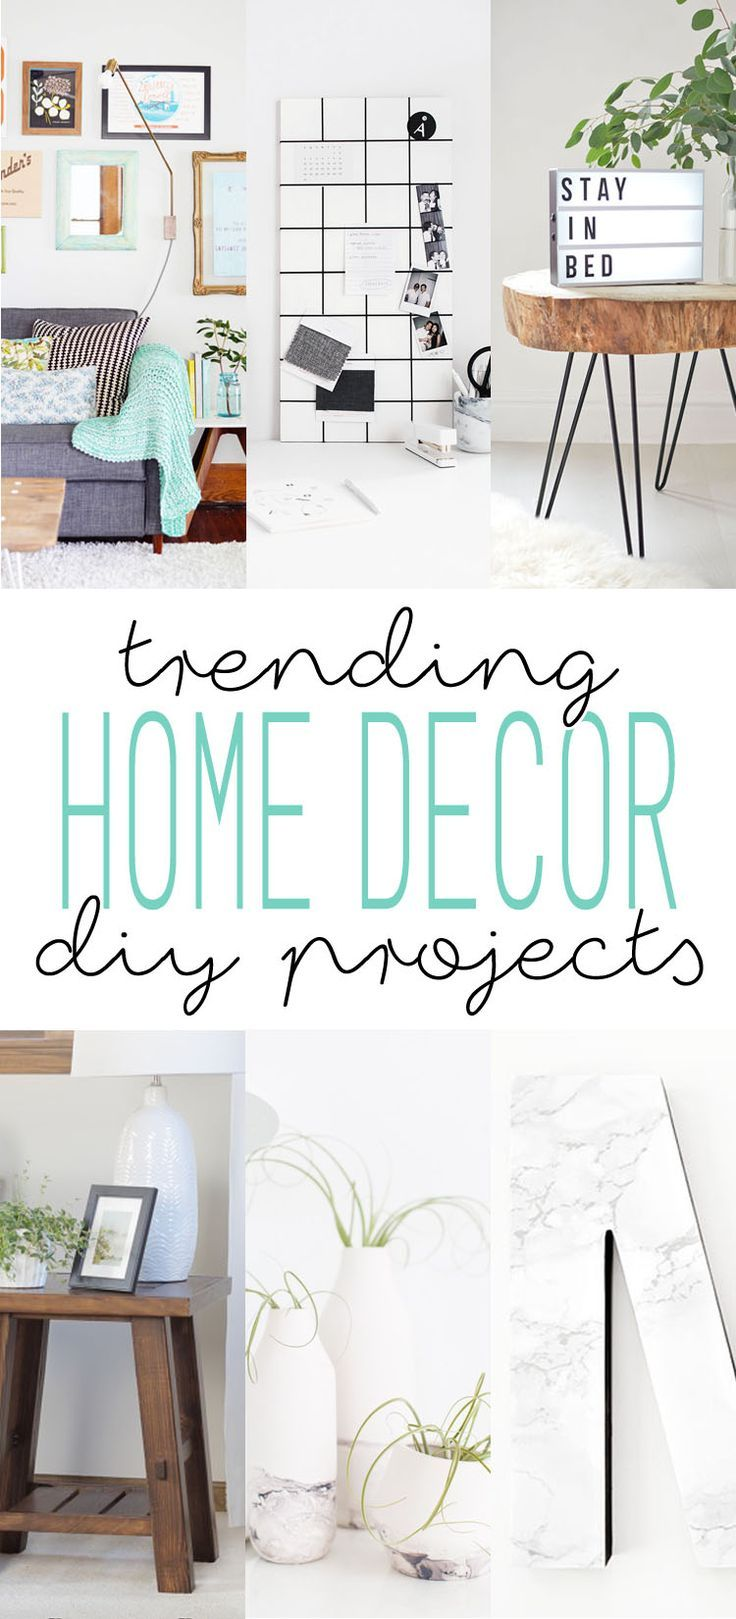 Trending Home Decor Diy Projects The Cottage Market Home Decor Diy Home Decor Diy Decor Projects